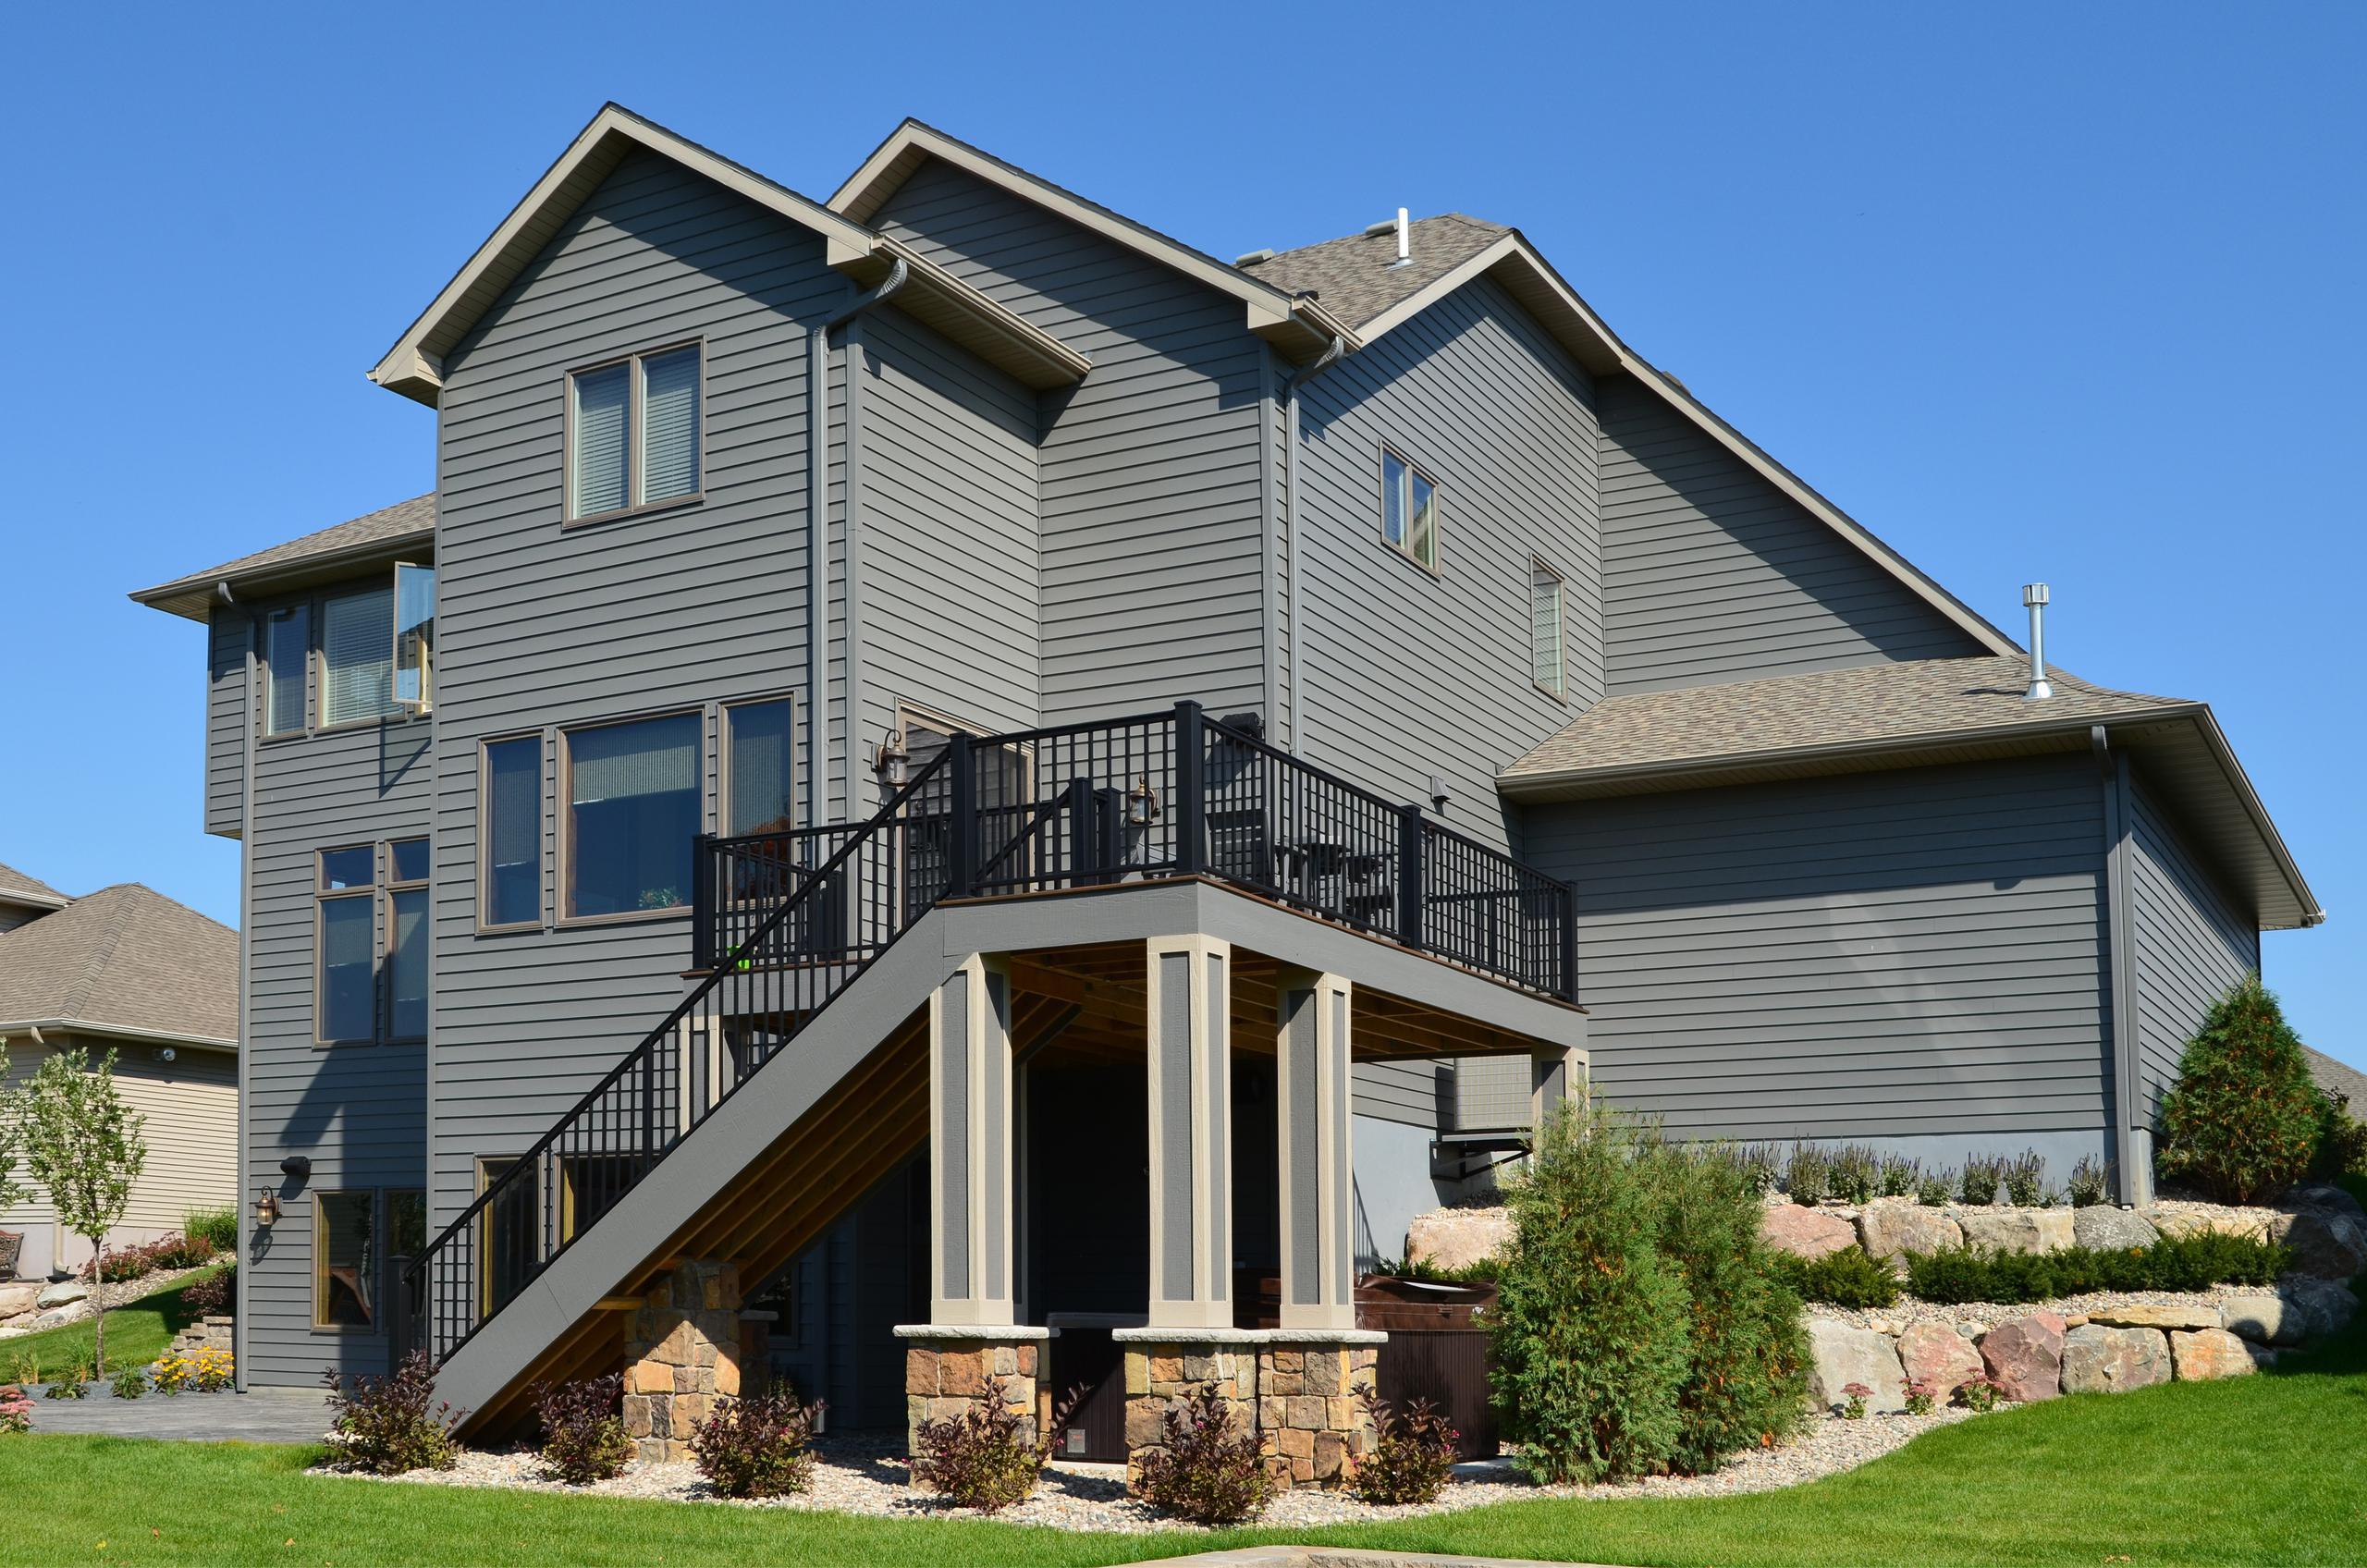 Style and quality were deciding factors for this homeowner when selecting siding for their new home. EDCO's steel siding provides the style you want with the highest quality product available